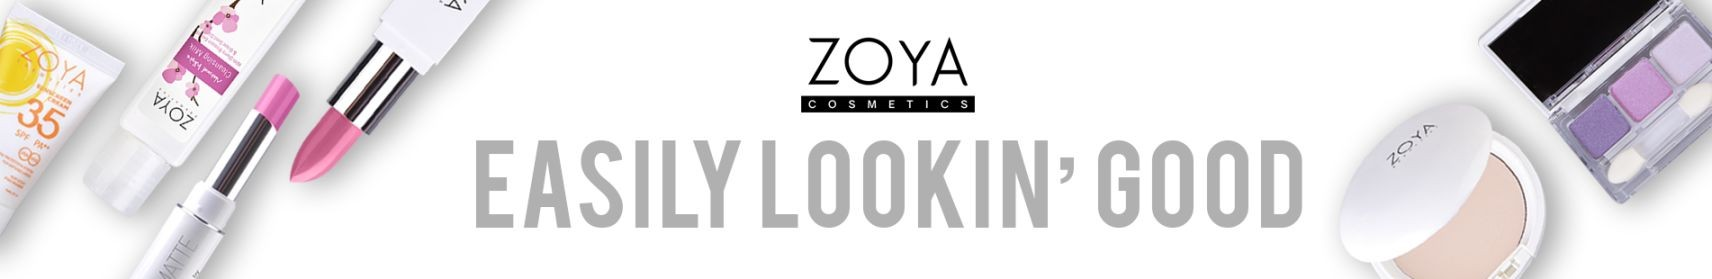 Zoya Cosmetics Official